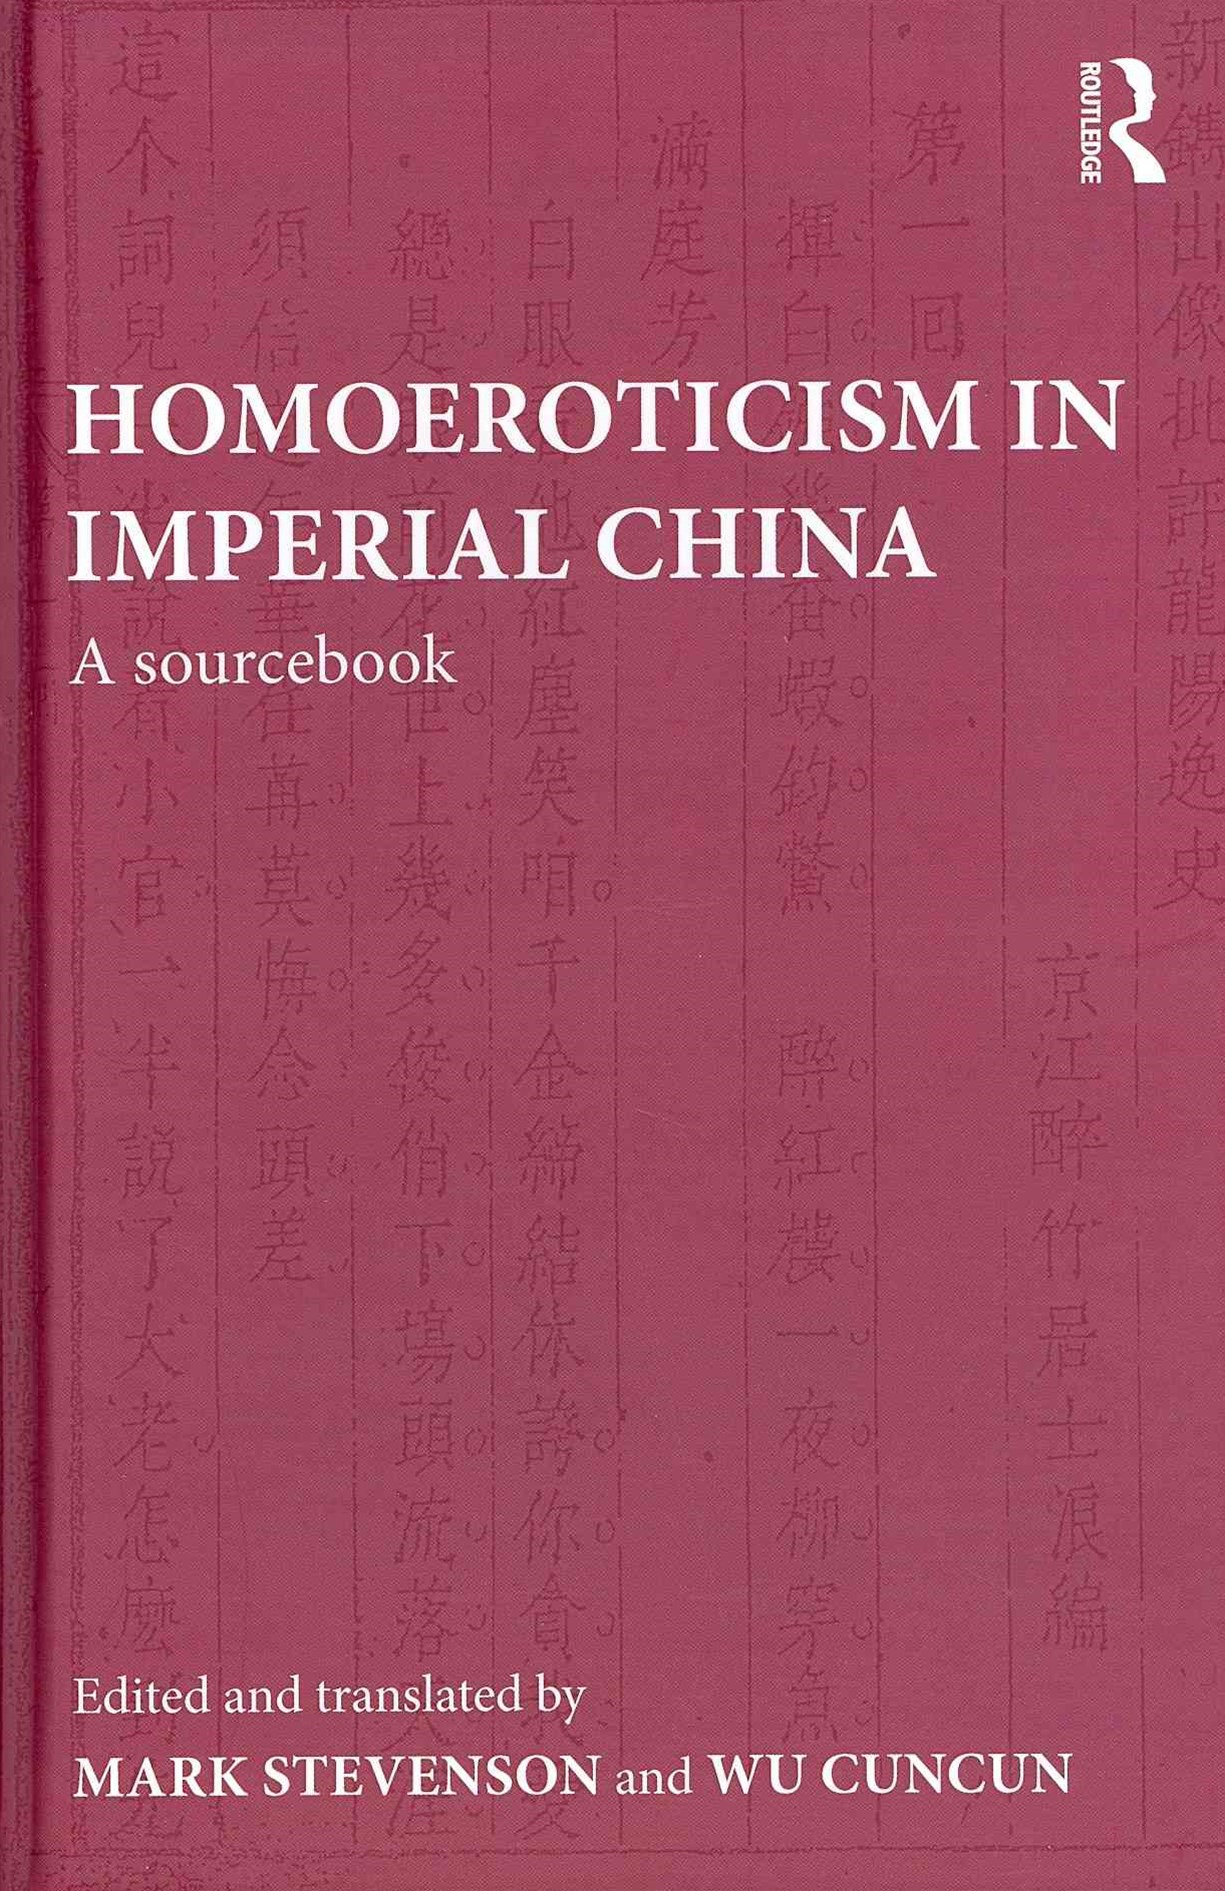 Homoeroticism in Imperial China